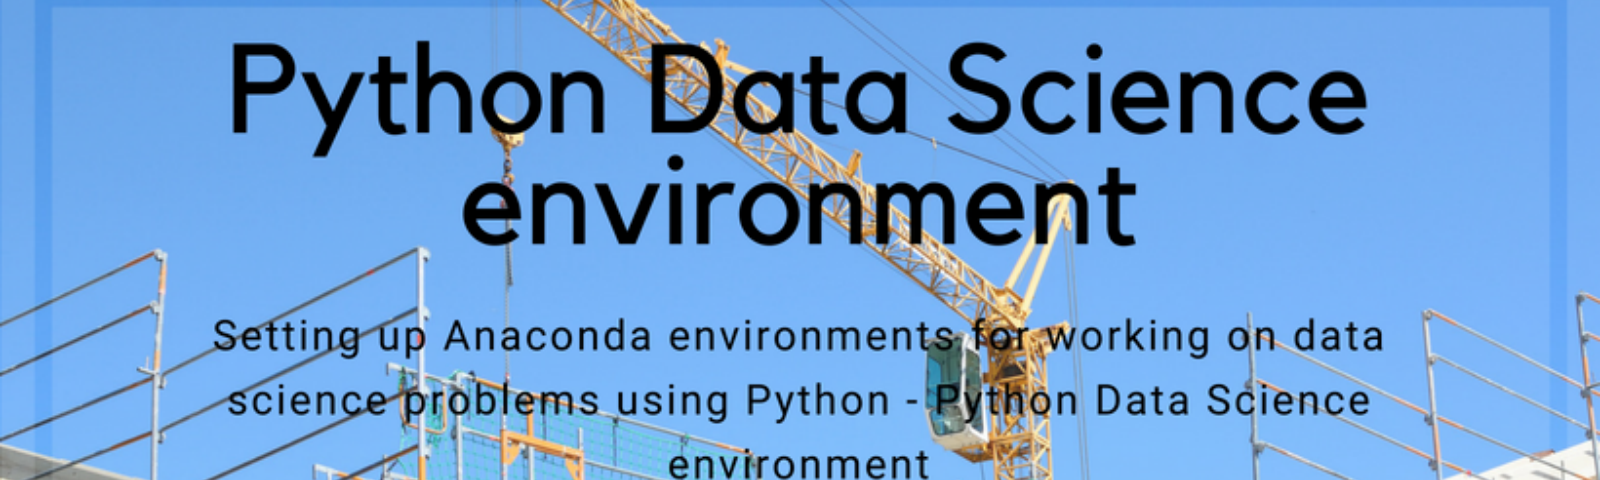 How to setup a Python Data Science environment — Setting up